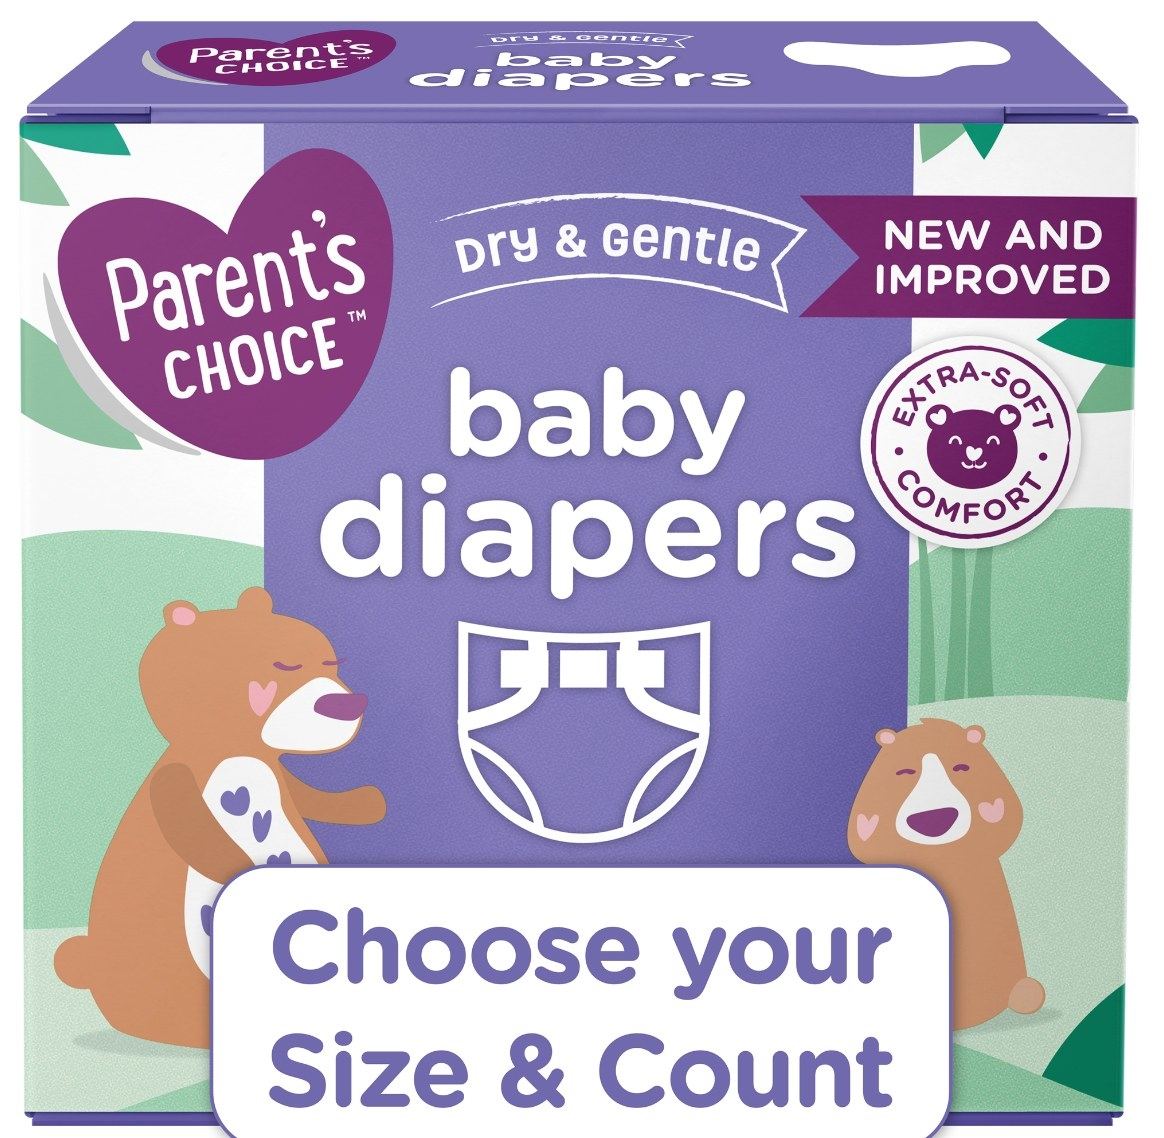 The set of baby diapers in size 3